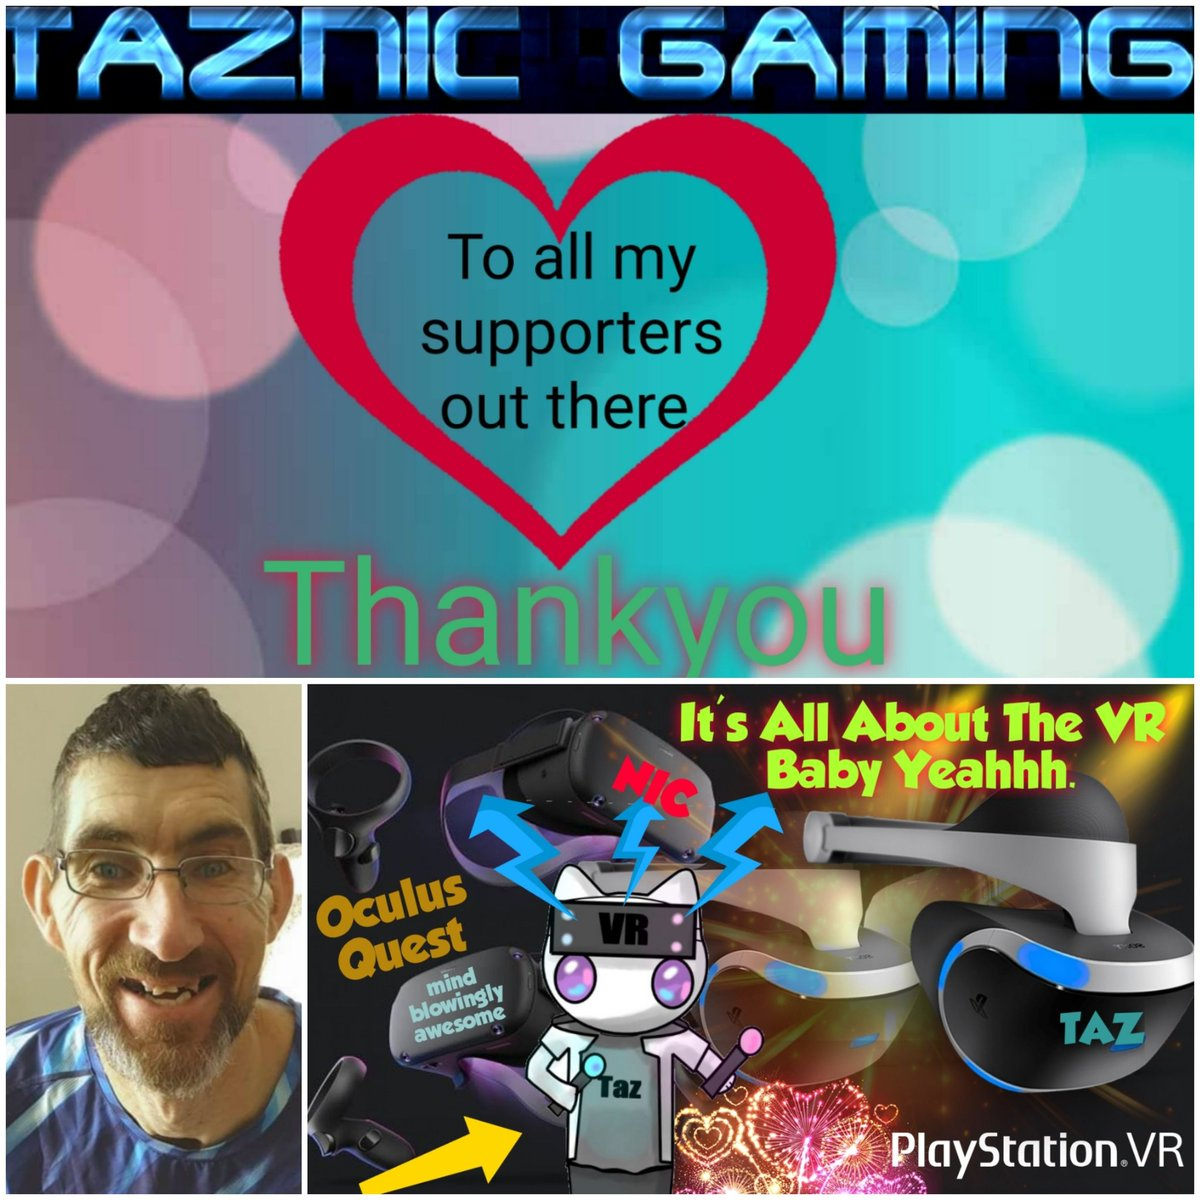 Just a little Thankyou from Taz folks